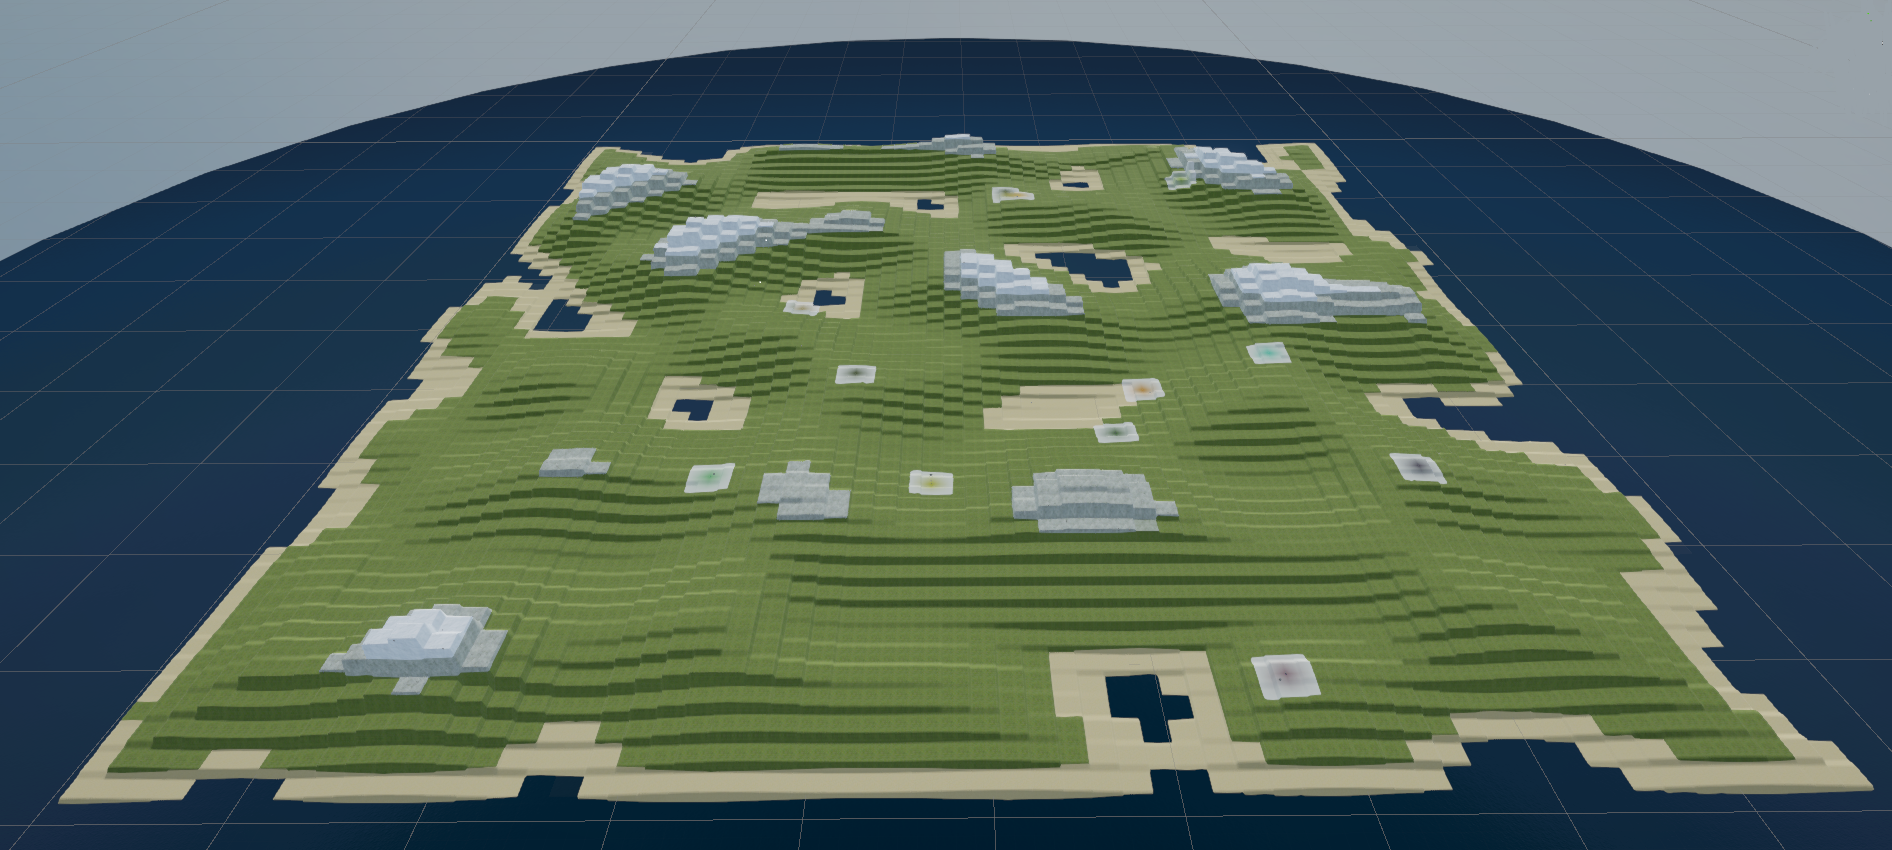 Zoomed out view of world map where most of the strategy aspects of the game play out